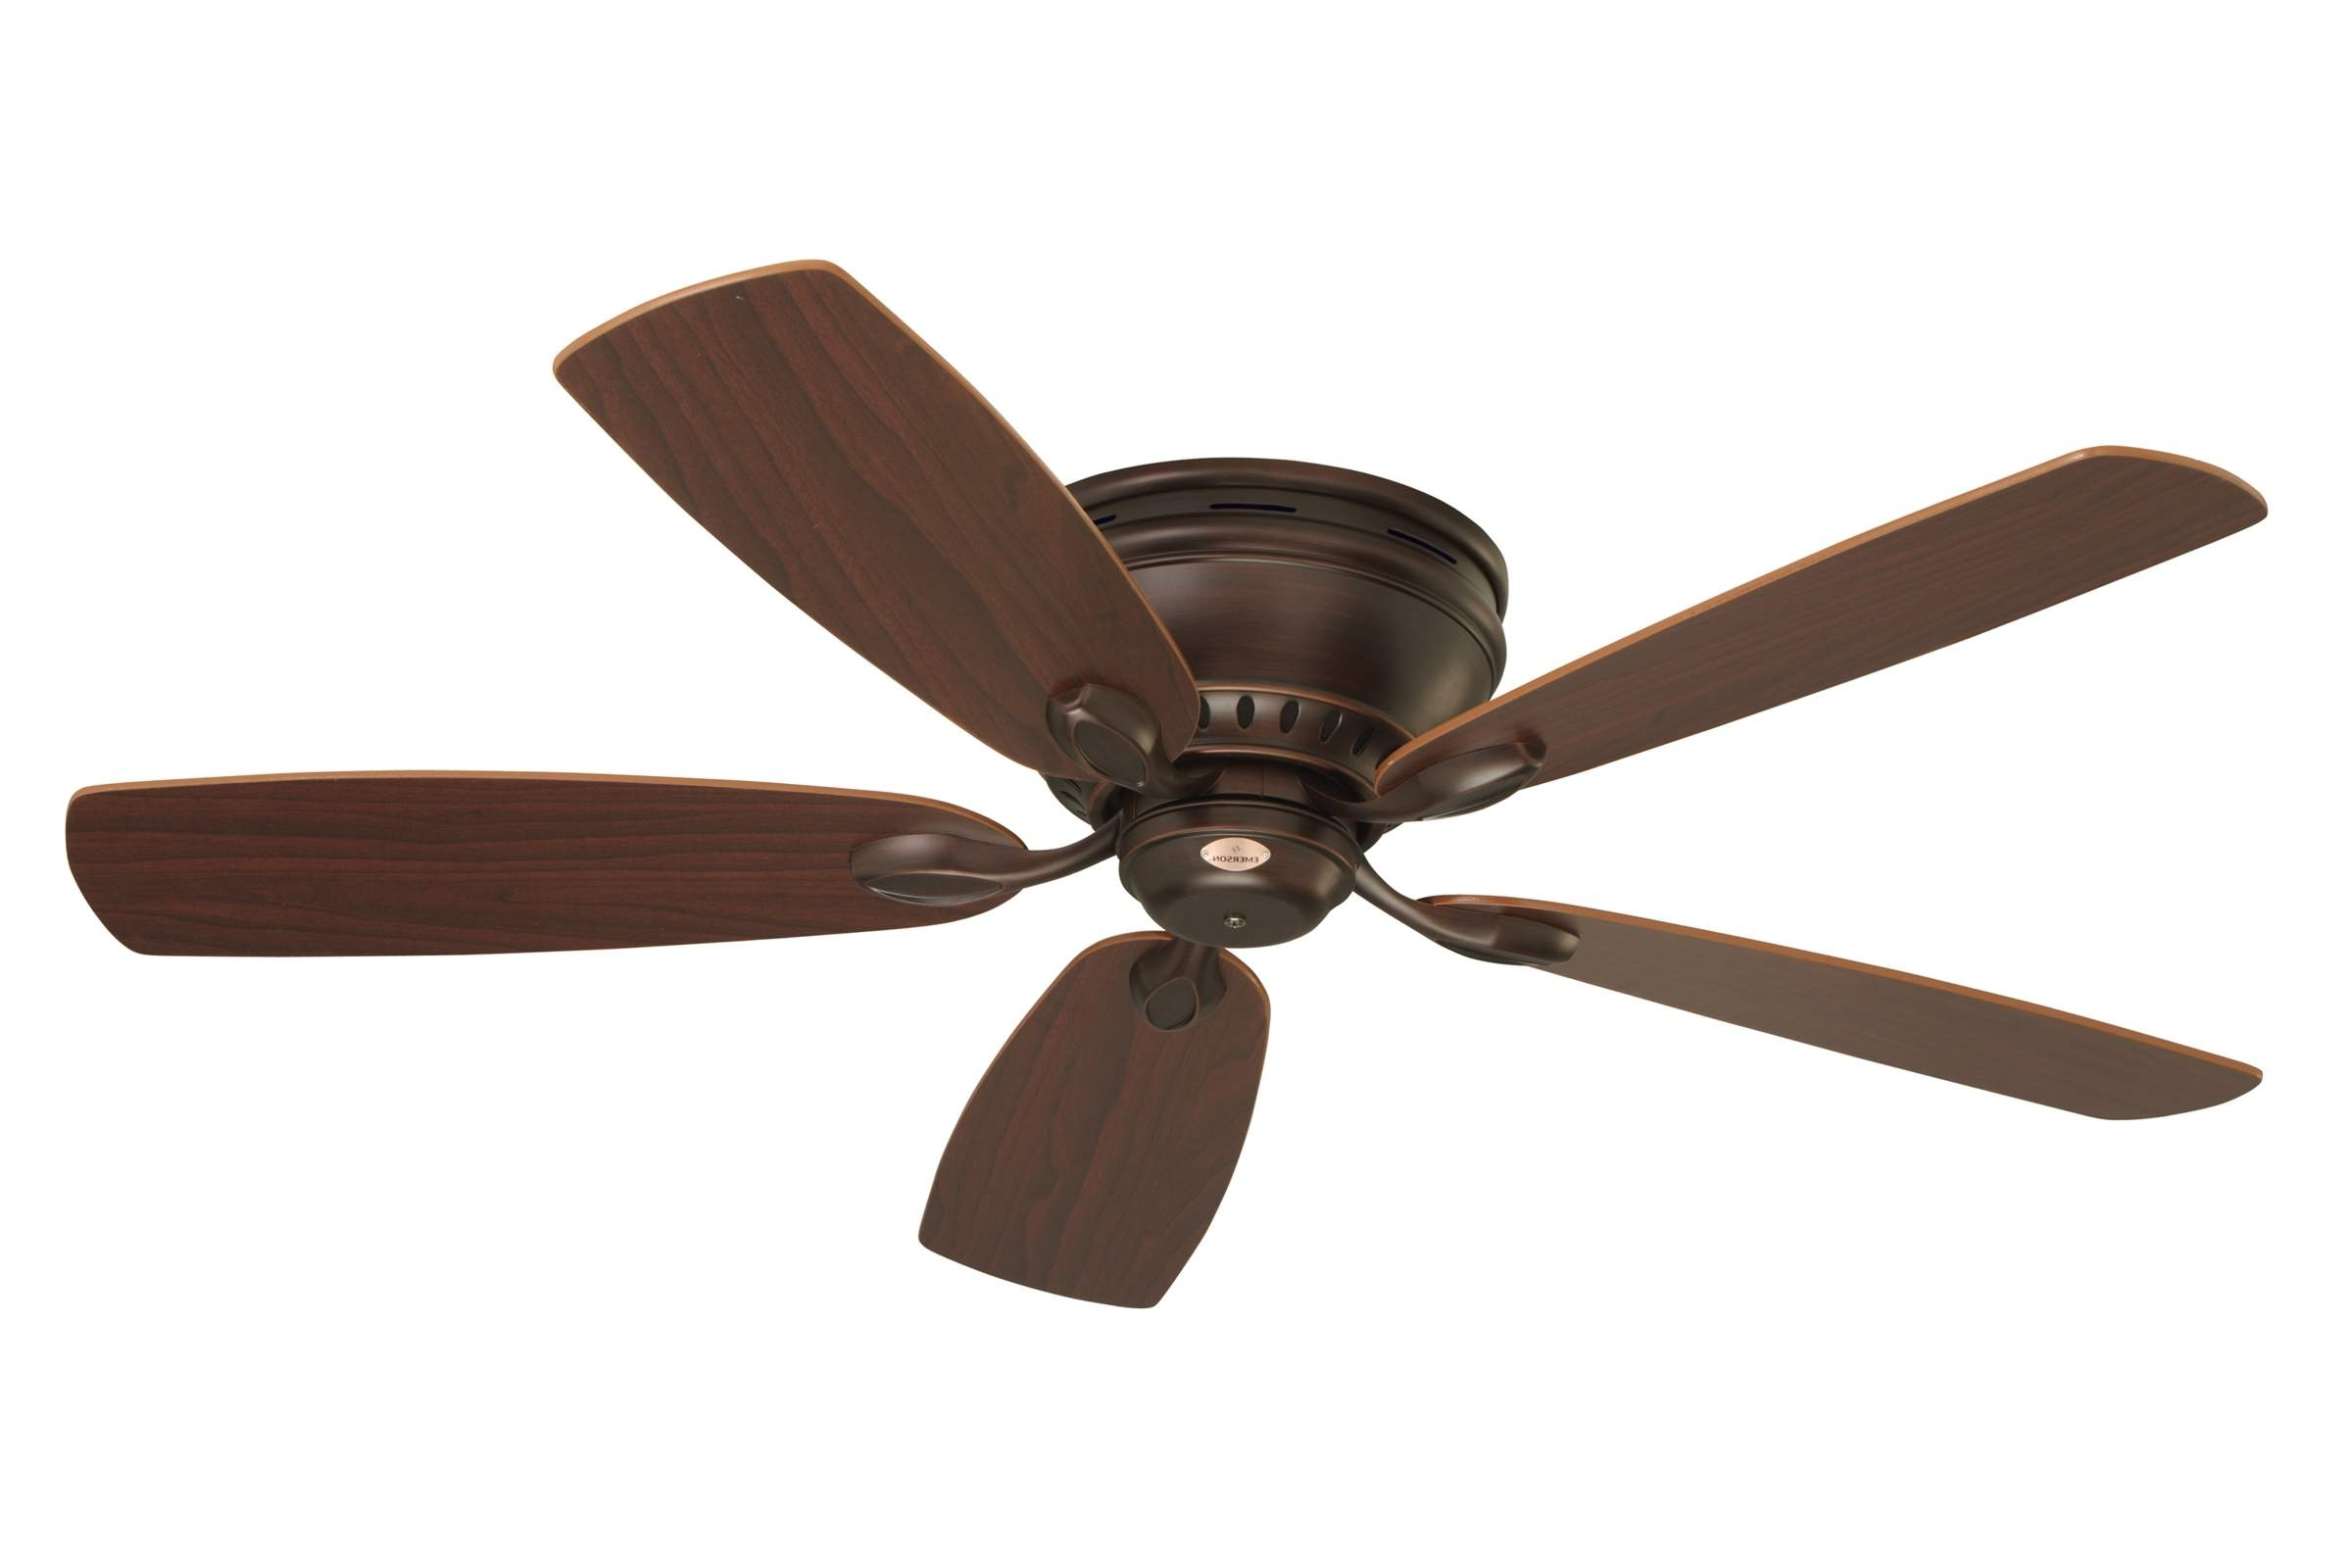 Ceiling Lights : Minimalis Outdoor Ceiling Fan With Light Home Depot In Widely Used Brown Outdoor Ceiling Fan With Light (View 13 of 20)